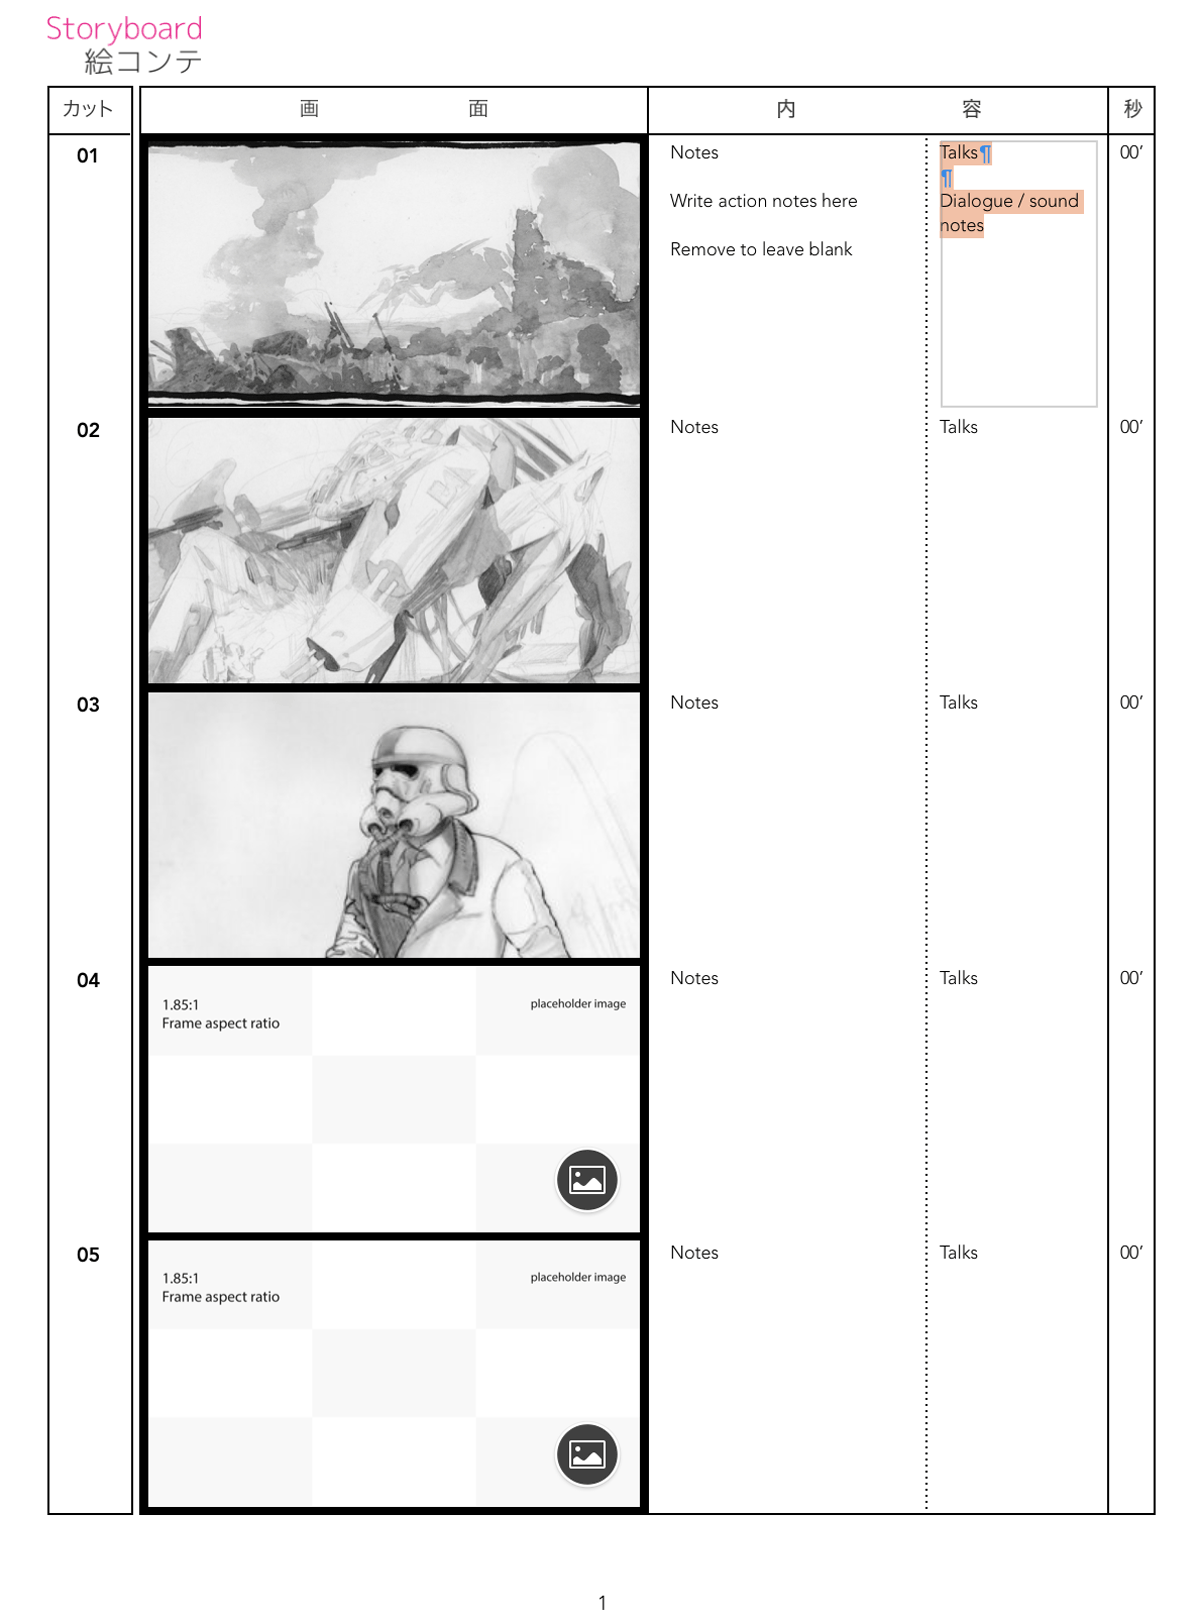 Japanese anime storyboard template for 1.85:1 aspect ratio editable with Apple Pages